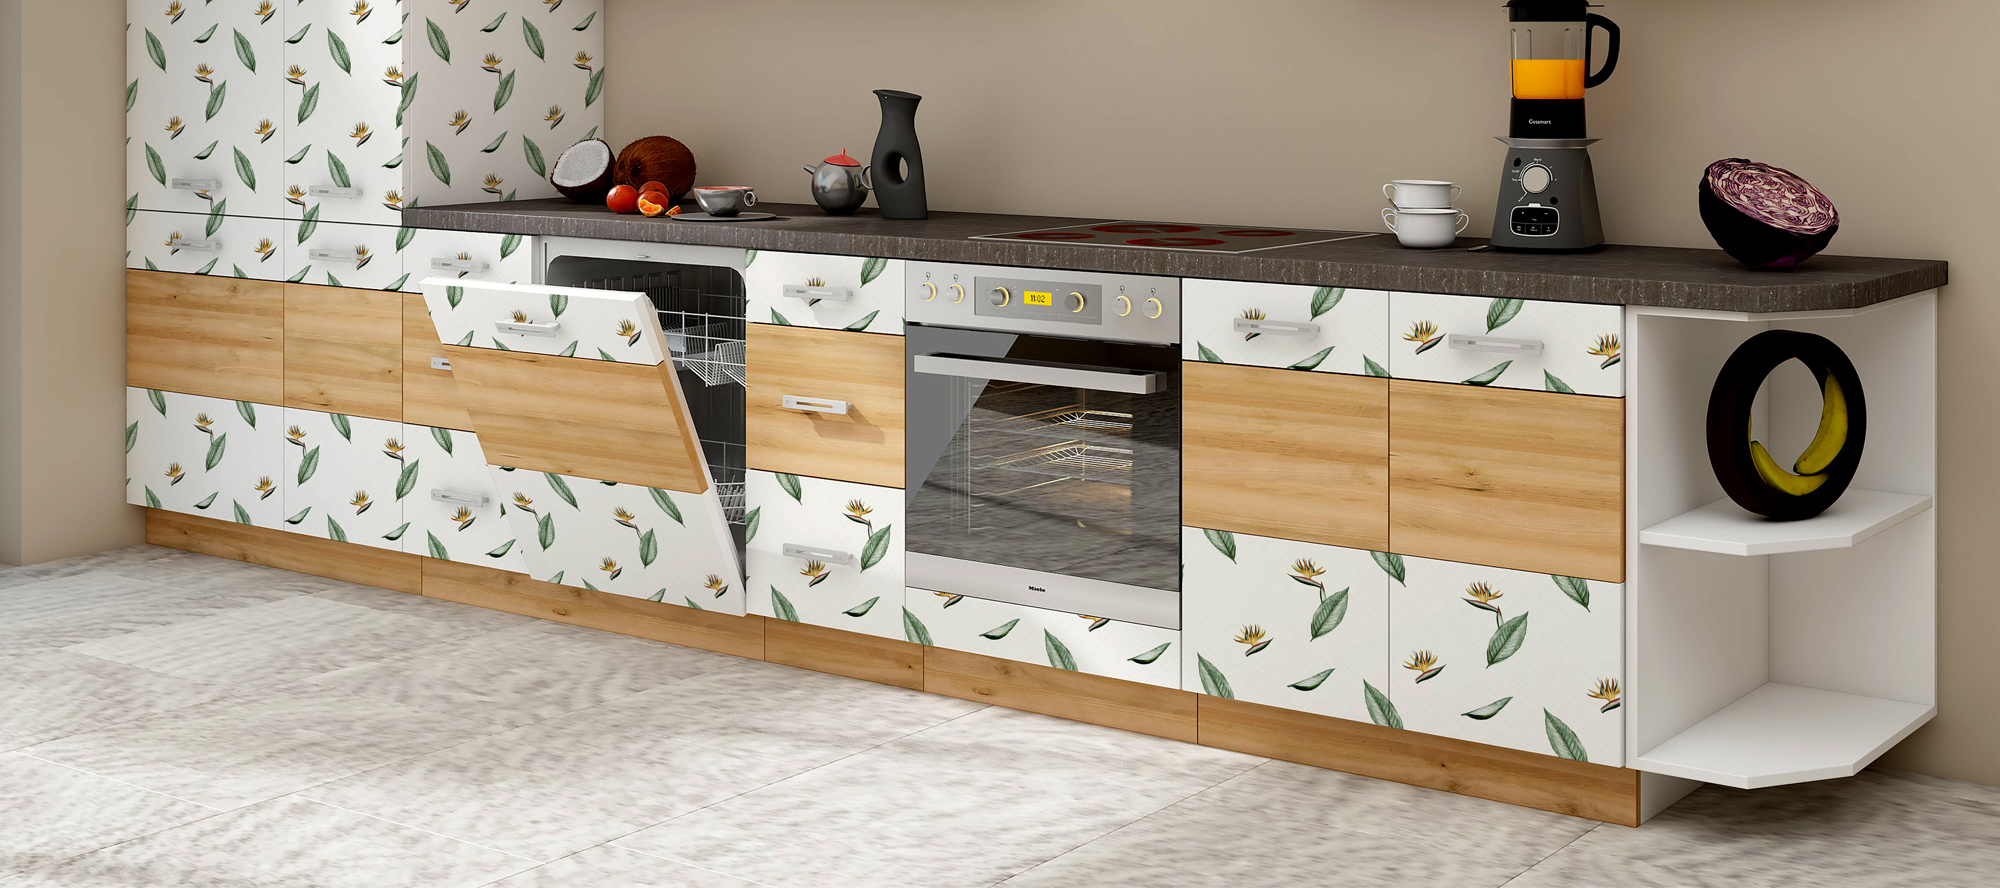 D'infinity, Oxy Grün Floral Laminates For Kitchen-Sundek International